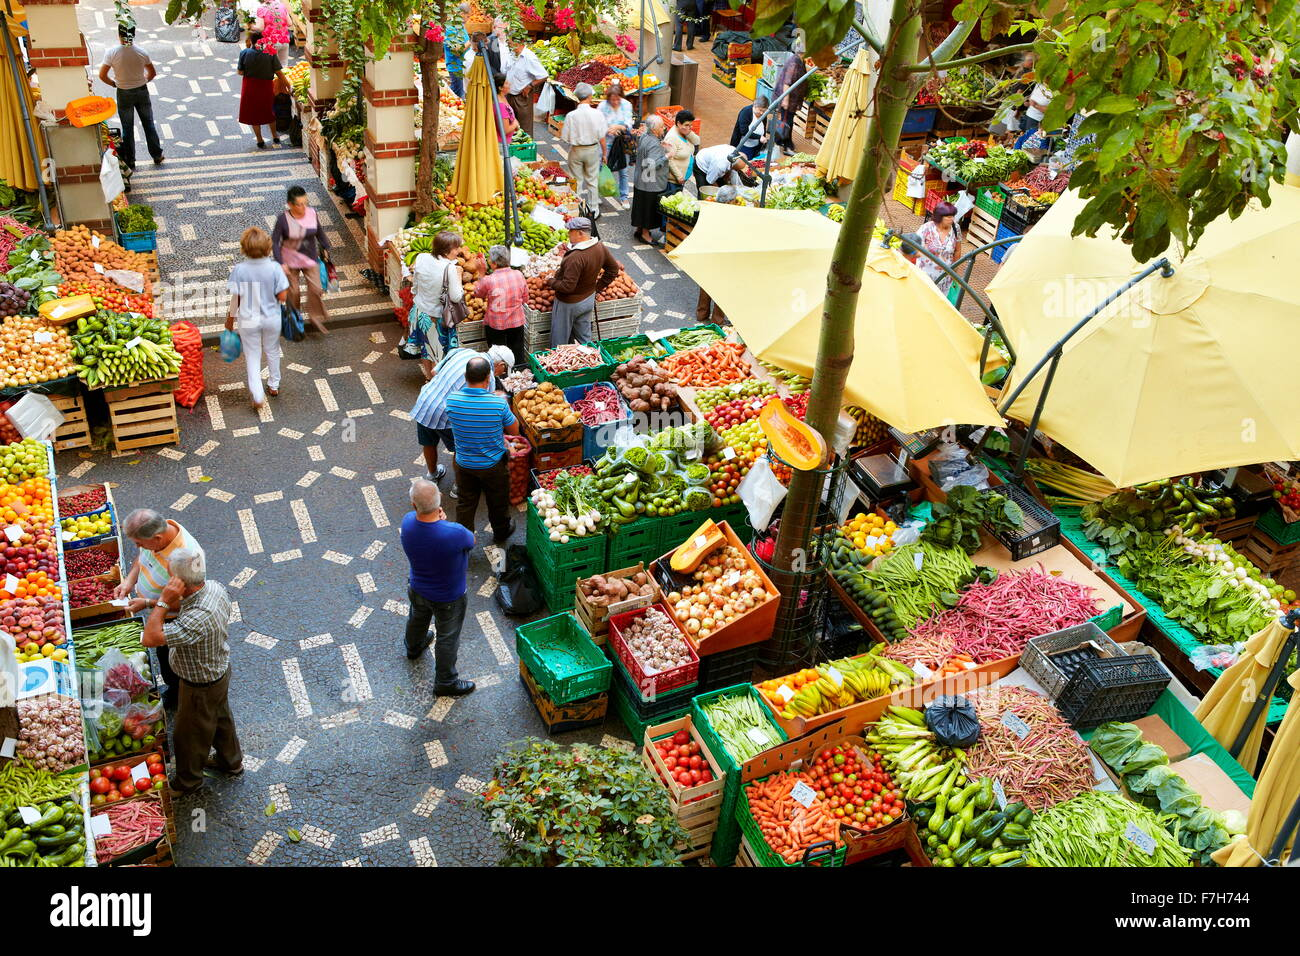 Mercado dos lavradores, fresh fruit and vegetables in the Funchal market, Madeira Island, Portugal Stock Photo